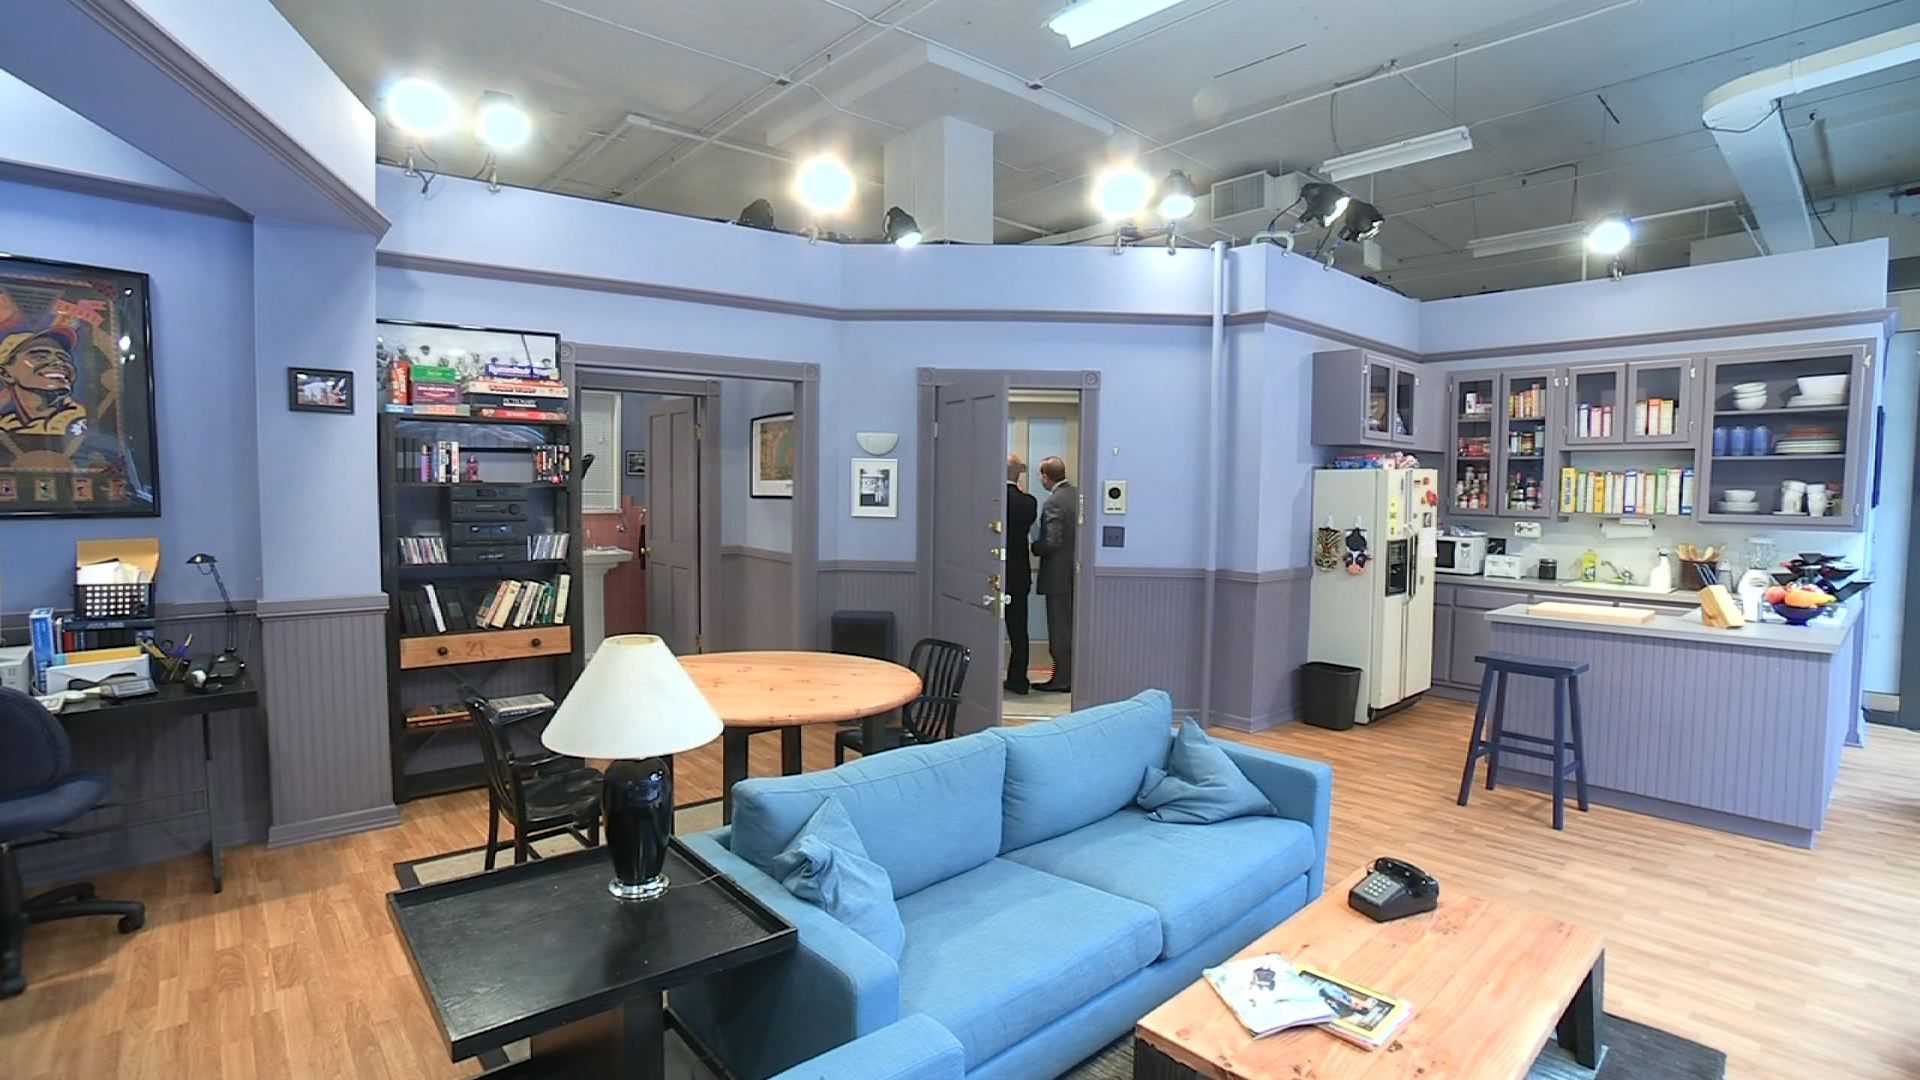 Brinno Tlc Pro Is The Hot Product In The Living Room Show Ten - Living room shows